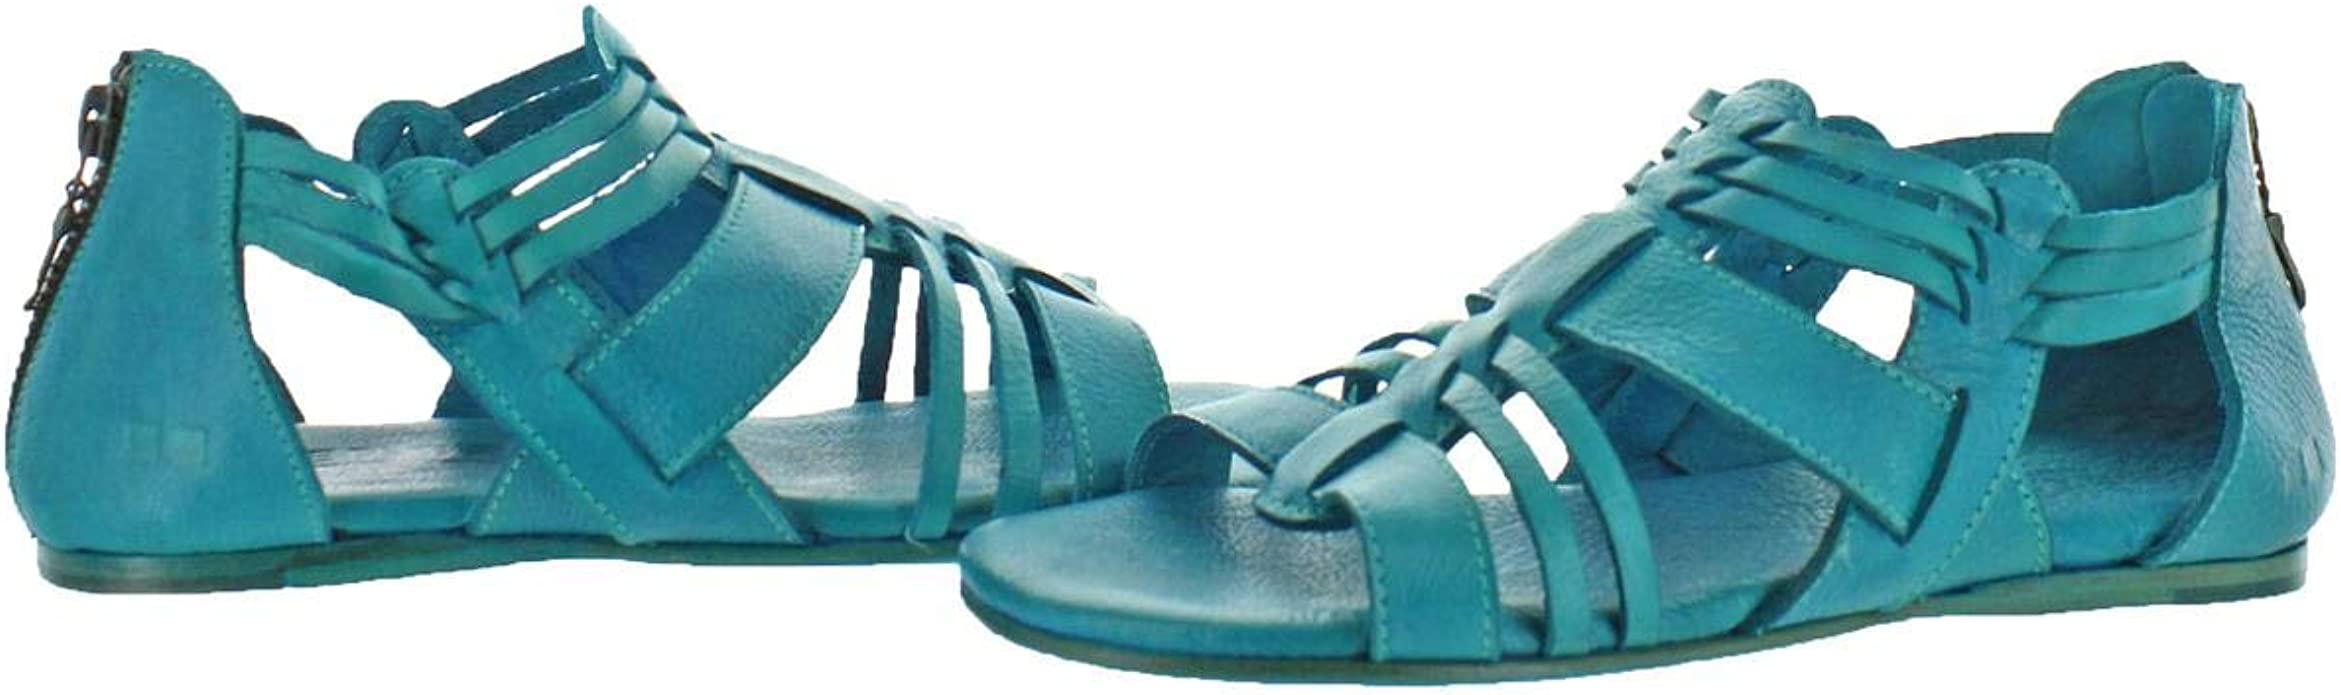 Bed Stu CARA Betta Dip Dye Turquoise Gladiator Leather Strappy Sandals Back Zip